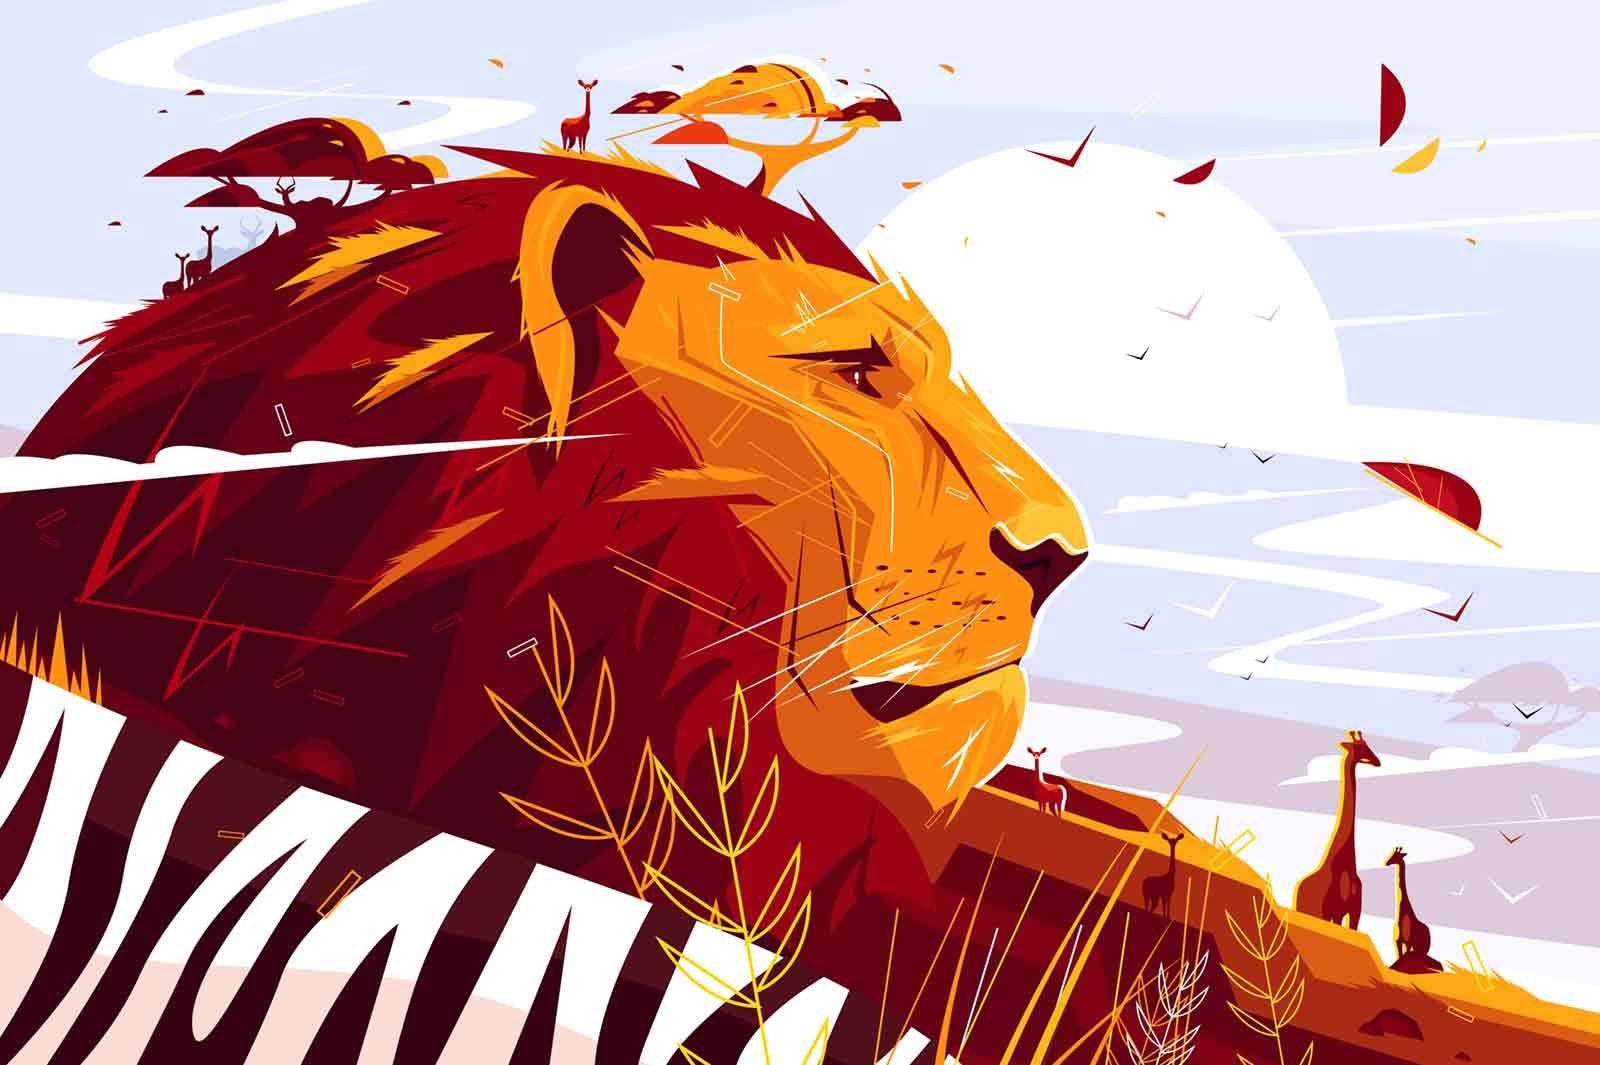 Majestic lion on safari vector illustration. King of beasts lying and giraffes walking flat style concept. Wild picturesque savannah landscape on background